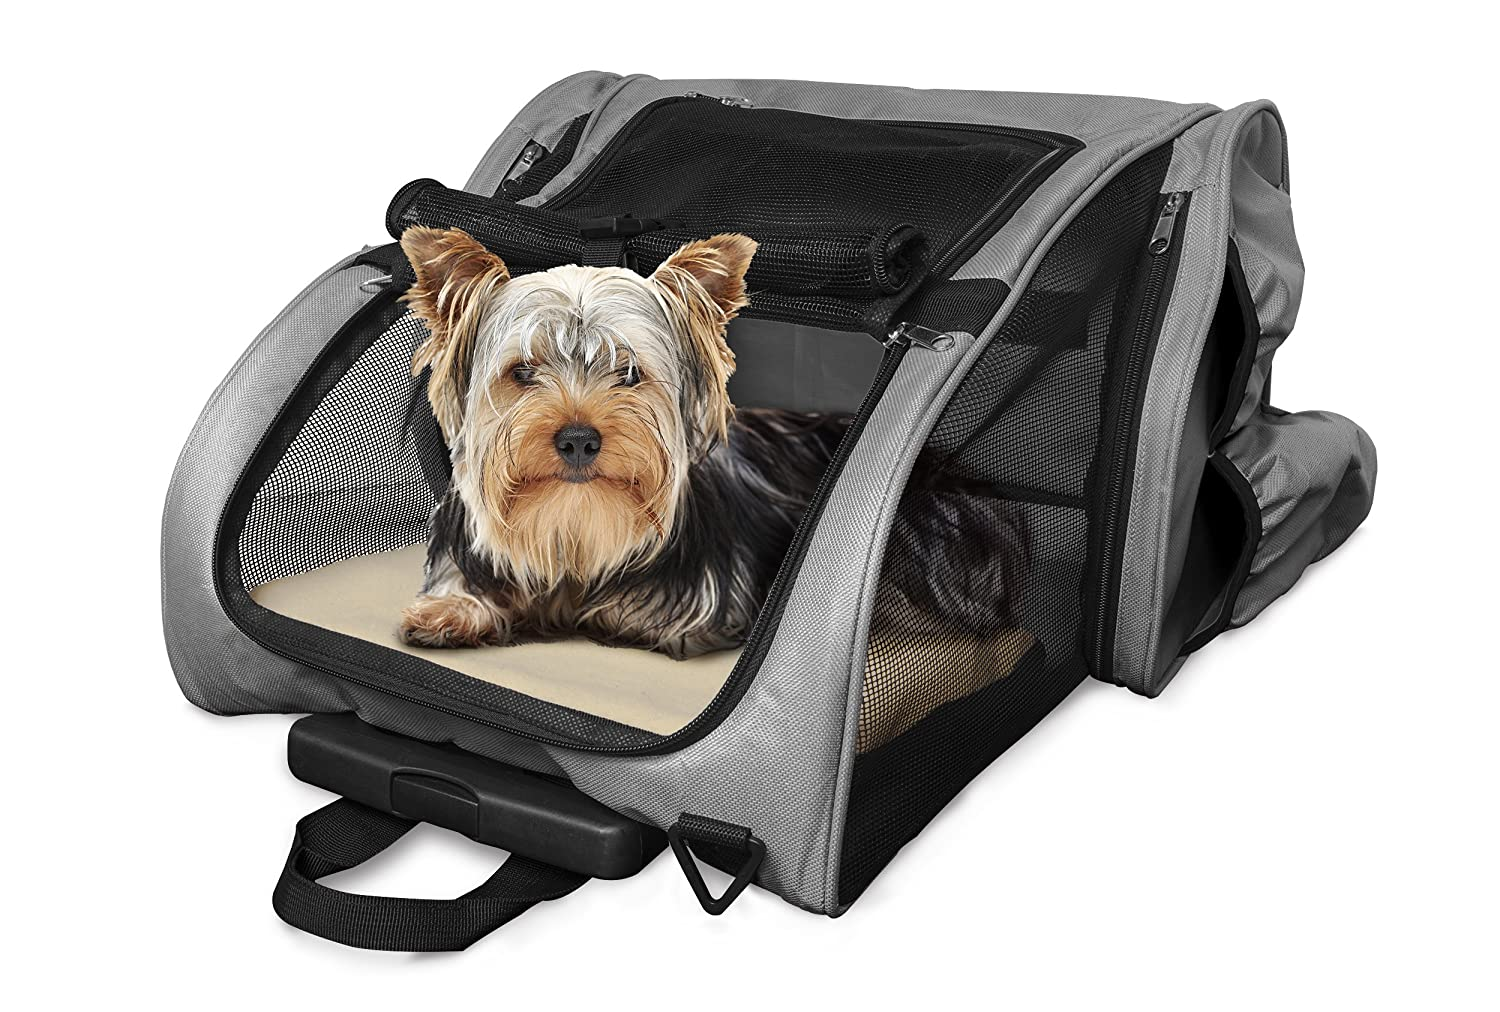 Furhaven Pet Products Backpack-Roller Carrier, Black, One Size 89243430.05